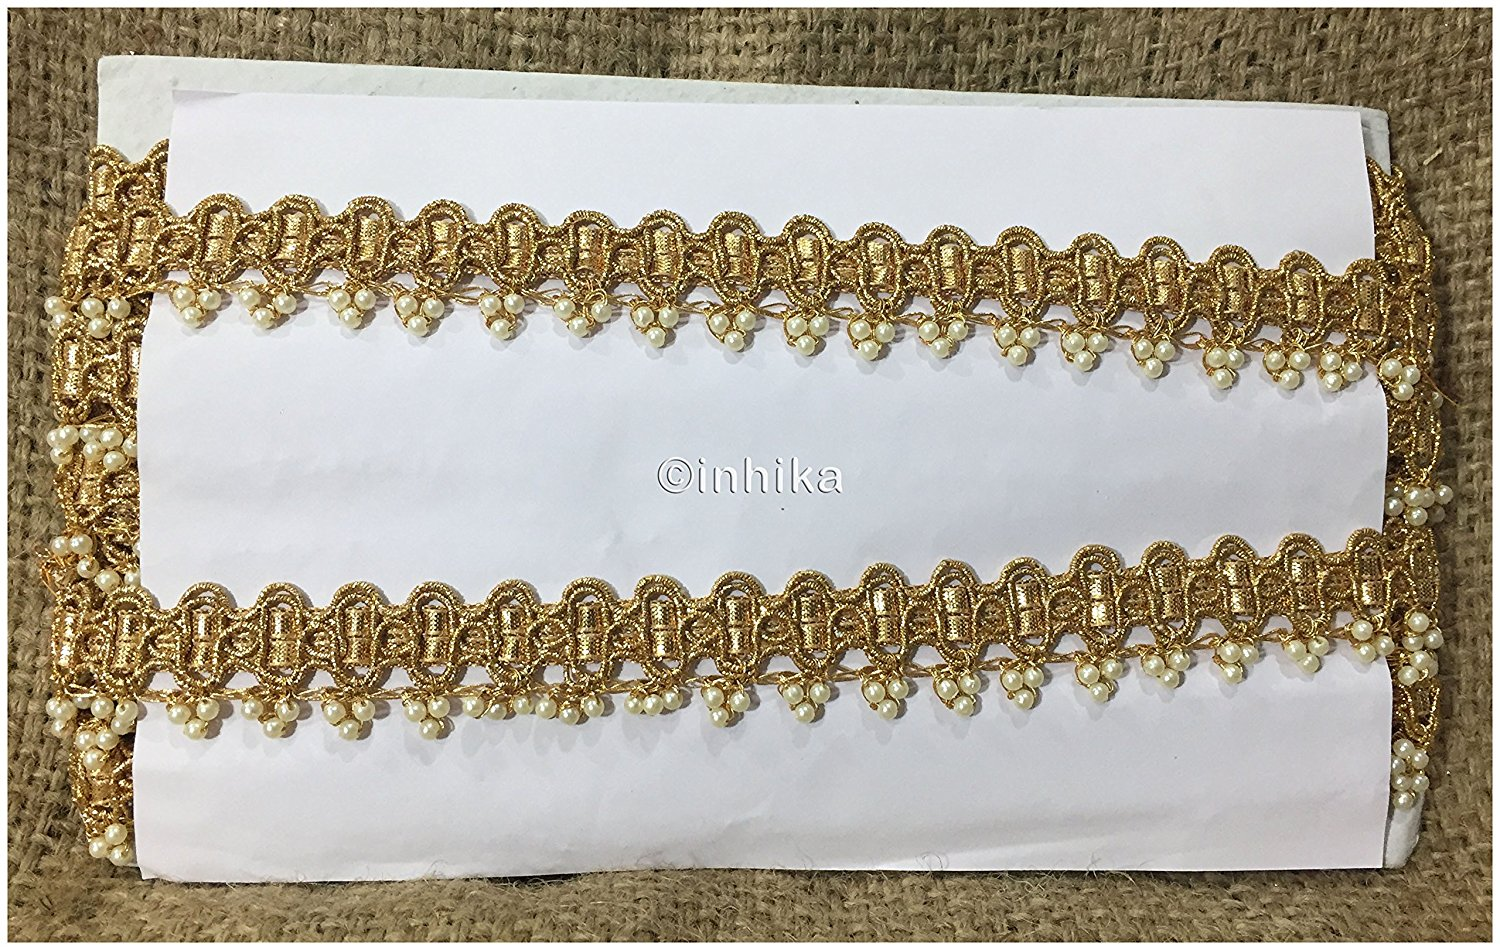 lace trim fabric decorative fabric trim ribbon for clothing Gold, Embroidery, Pearl, 1 Inch Wide material Cotton Mix